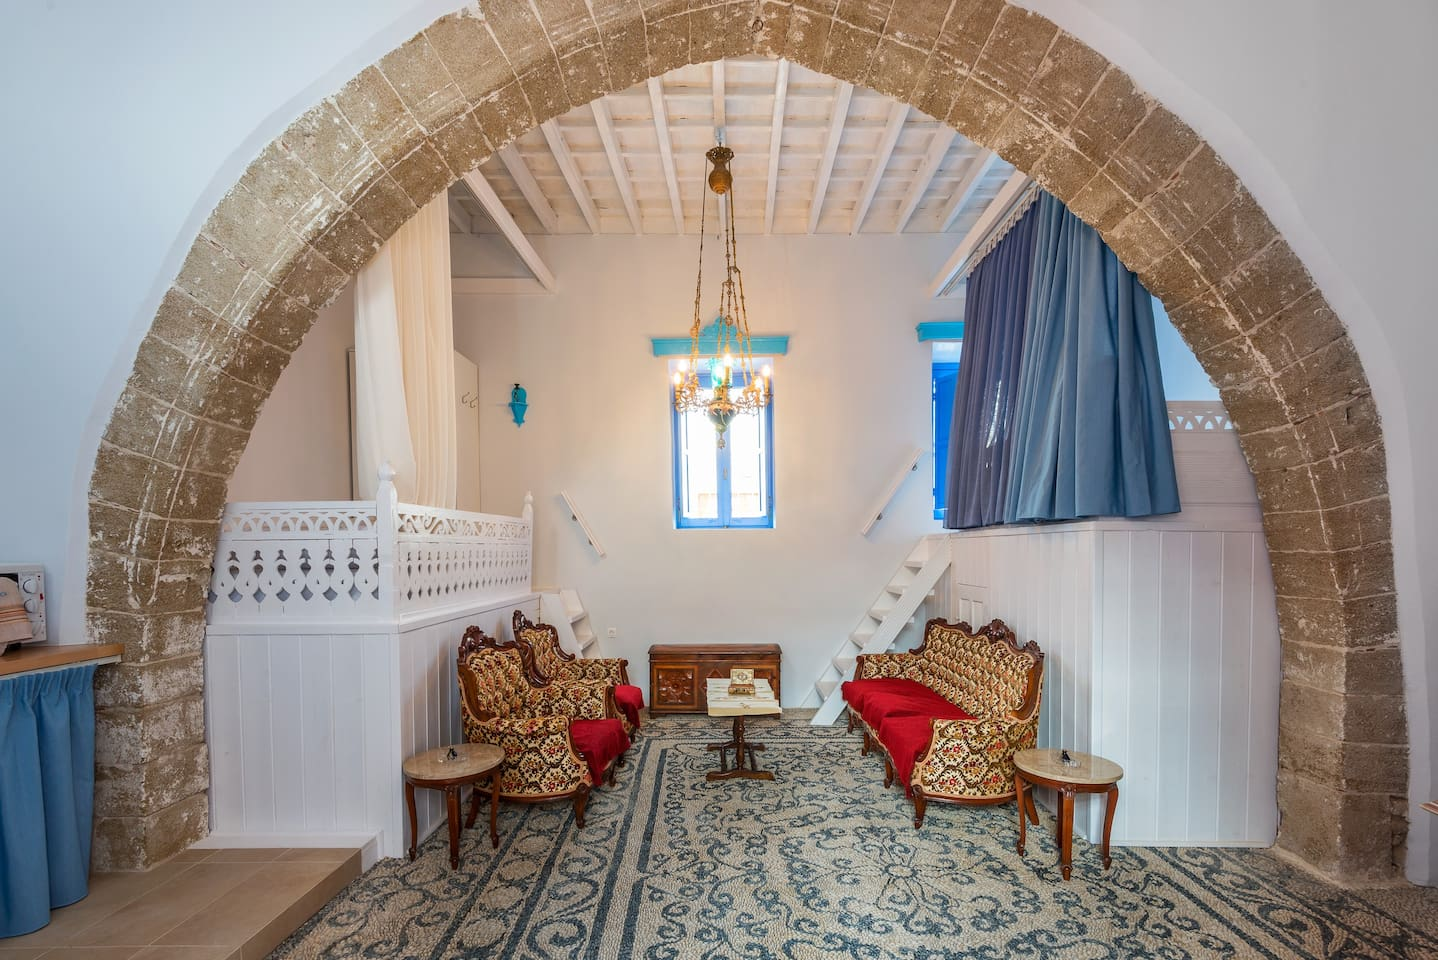 Louloudi Traditional House. Amazing atmosphere of this house, which was lately renovated but still keep original features like pebble floor, high ceiling, two double beds elevated on the sides of the main room.